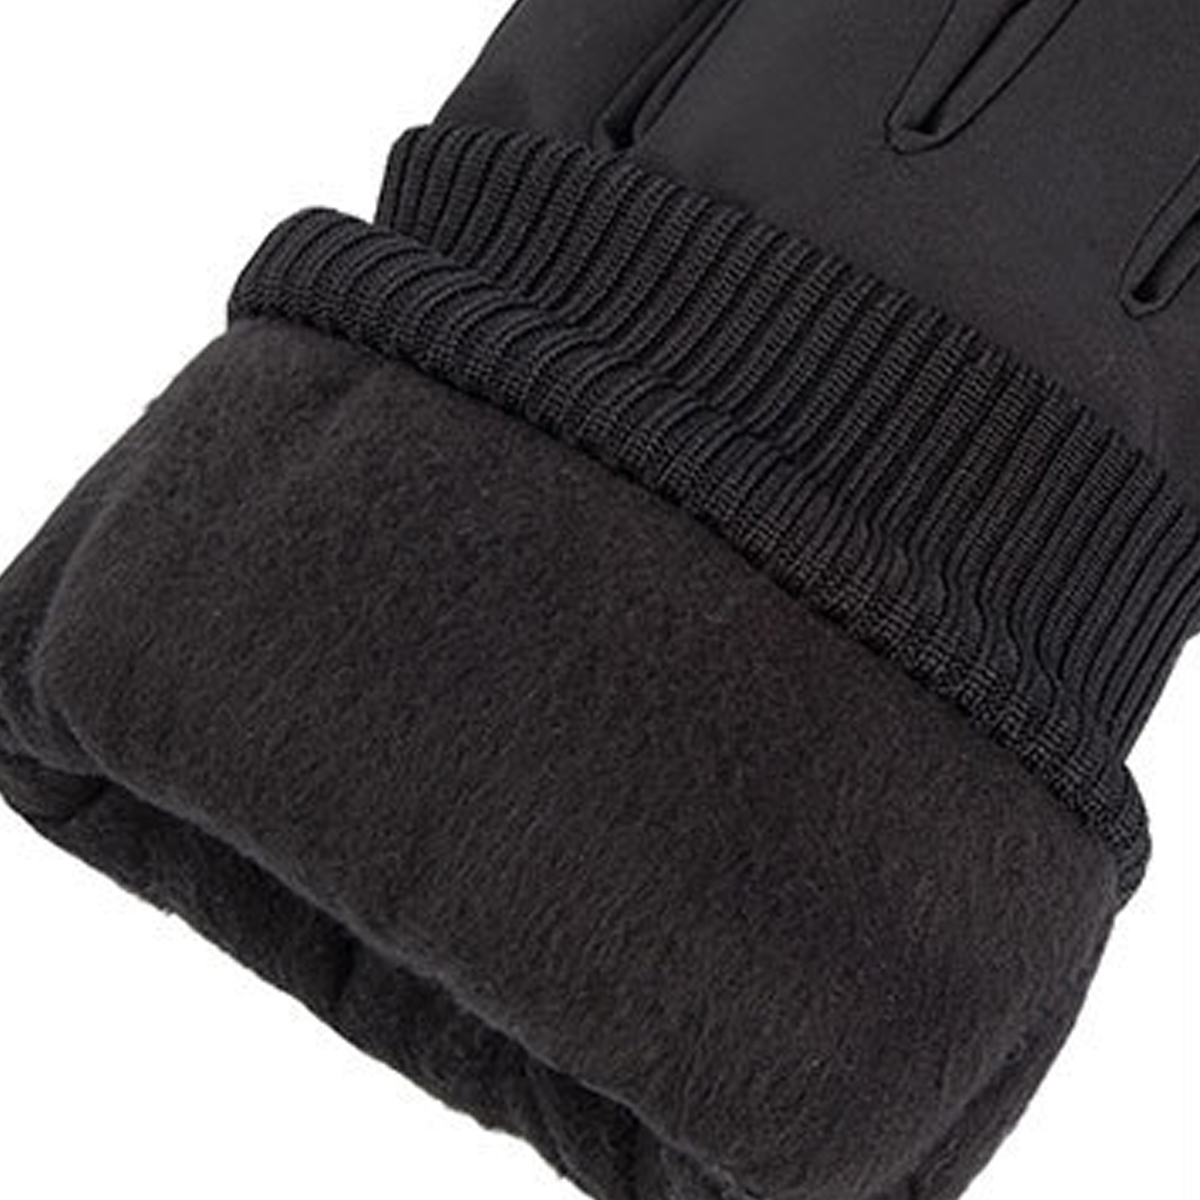 Winter Warm Thermal Touch Screen Gloves Ski Snow Snowboard Cycling Touchscreen Waterproof